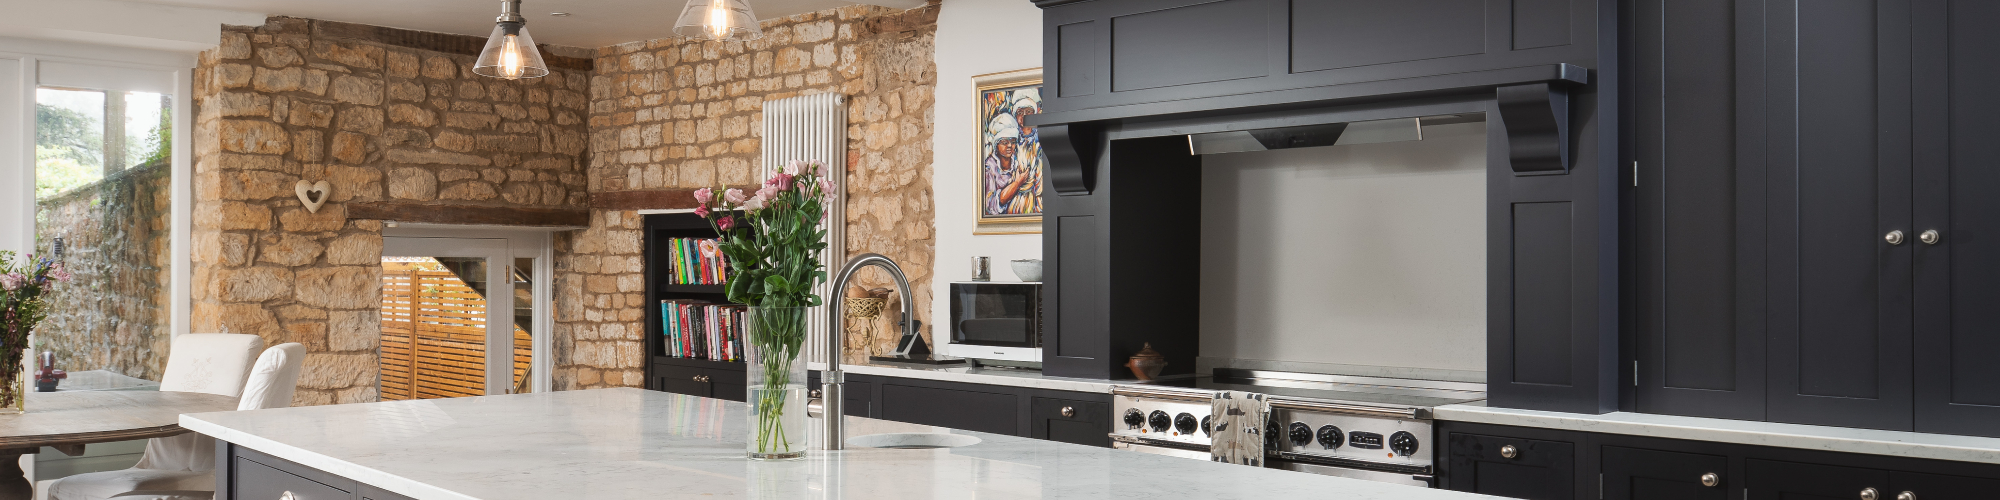 Bespoke Kitchens From Eternal Kitchens Somerset And The